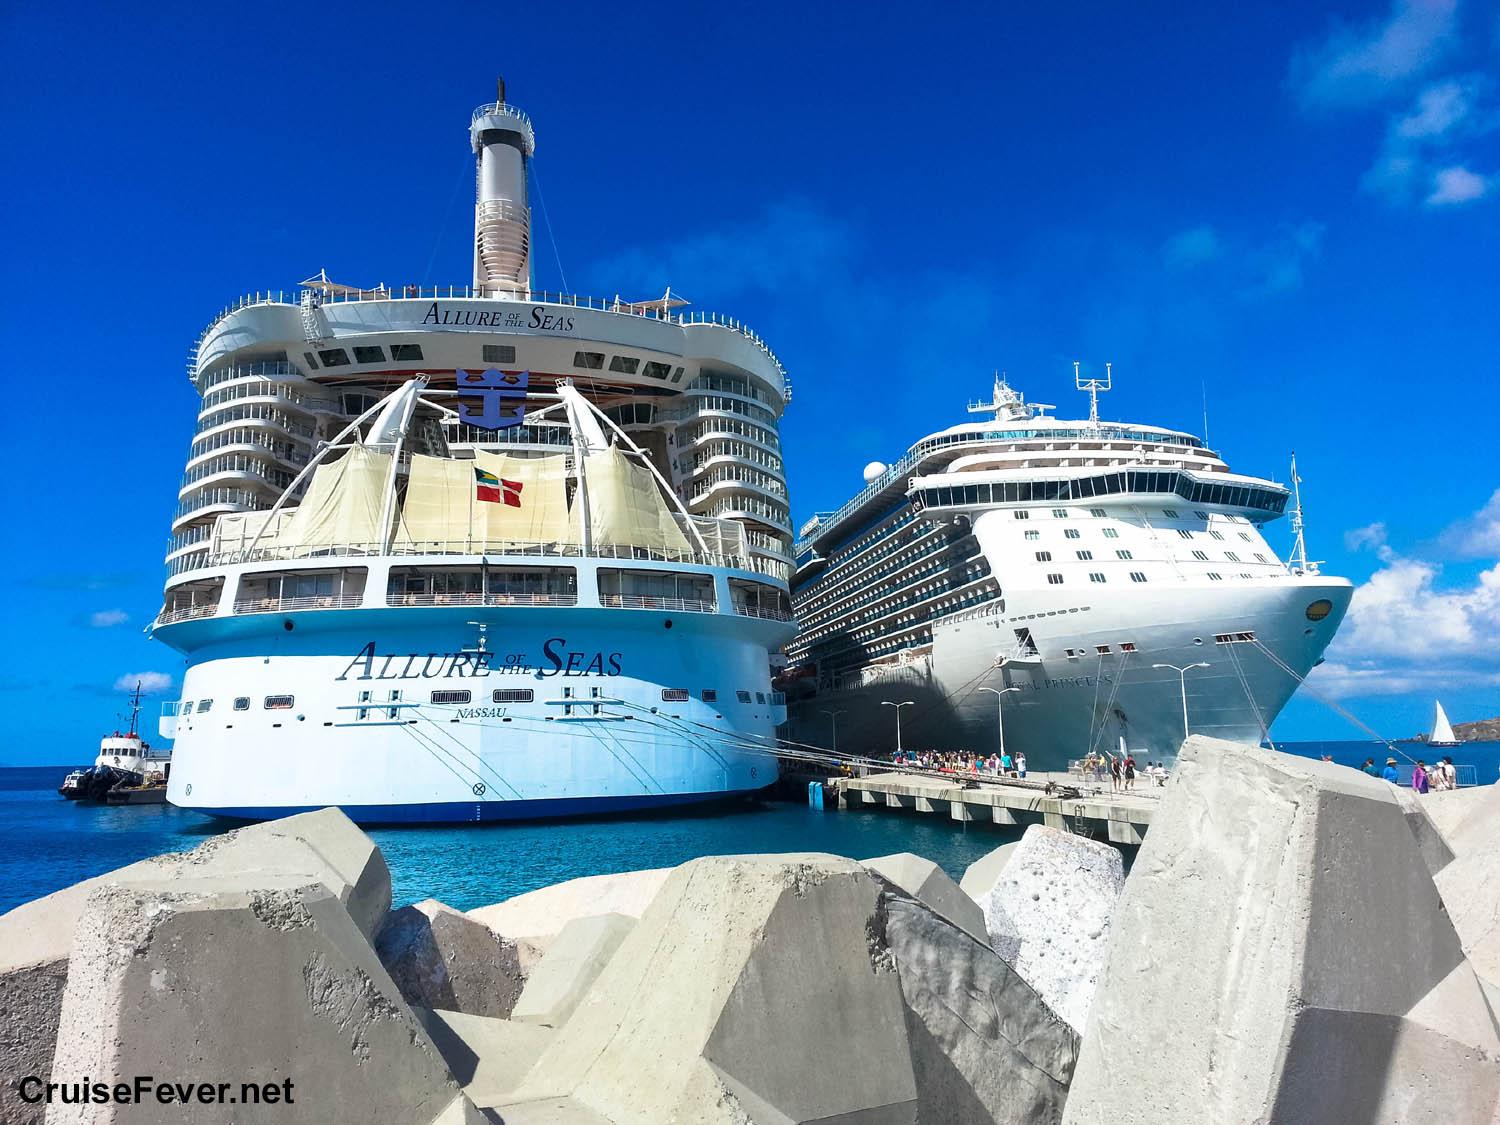 5 Things To Do In St. Maarten While On A Cruise